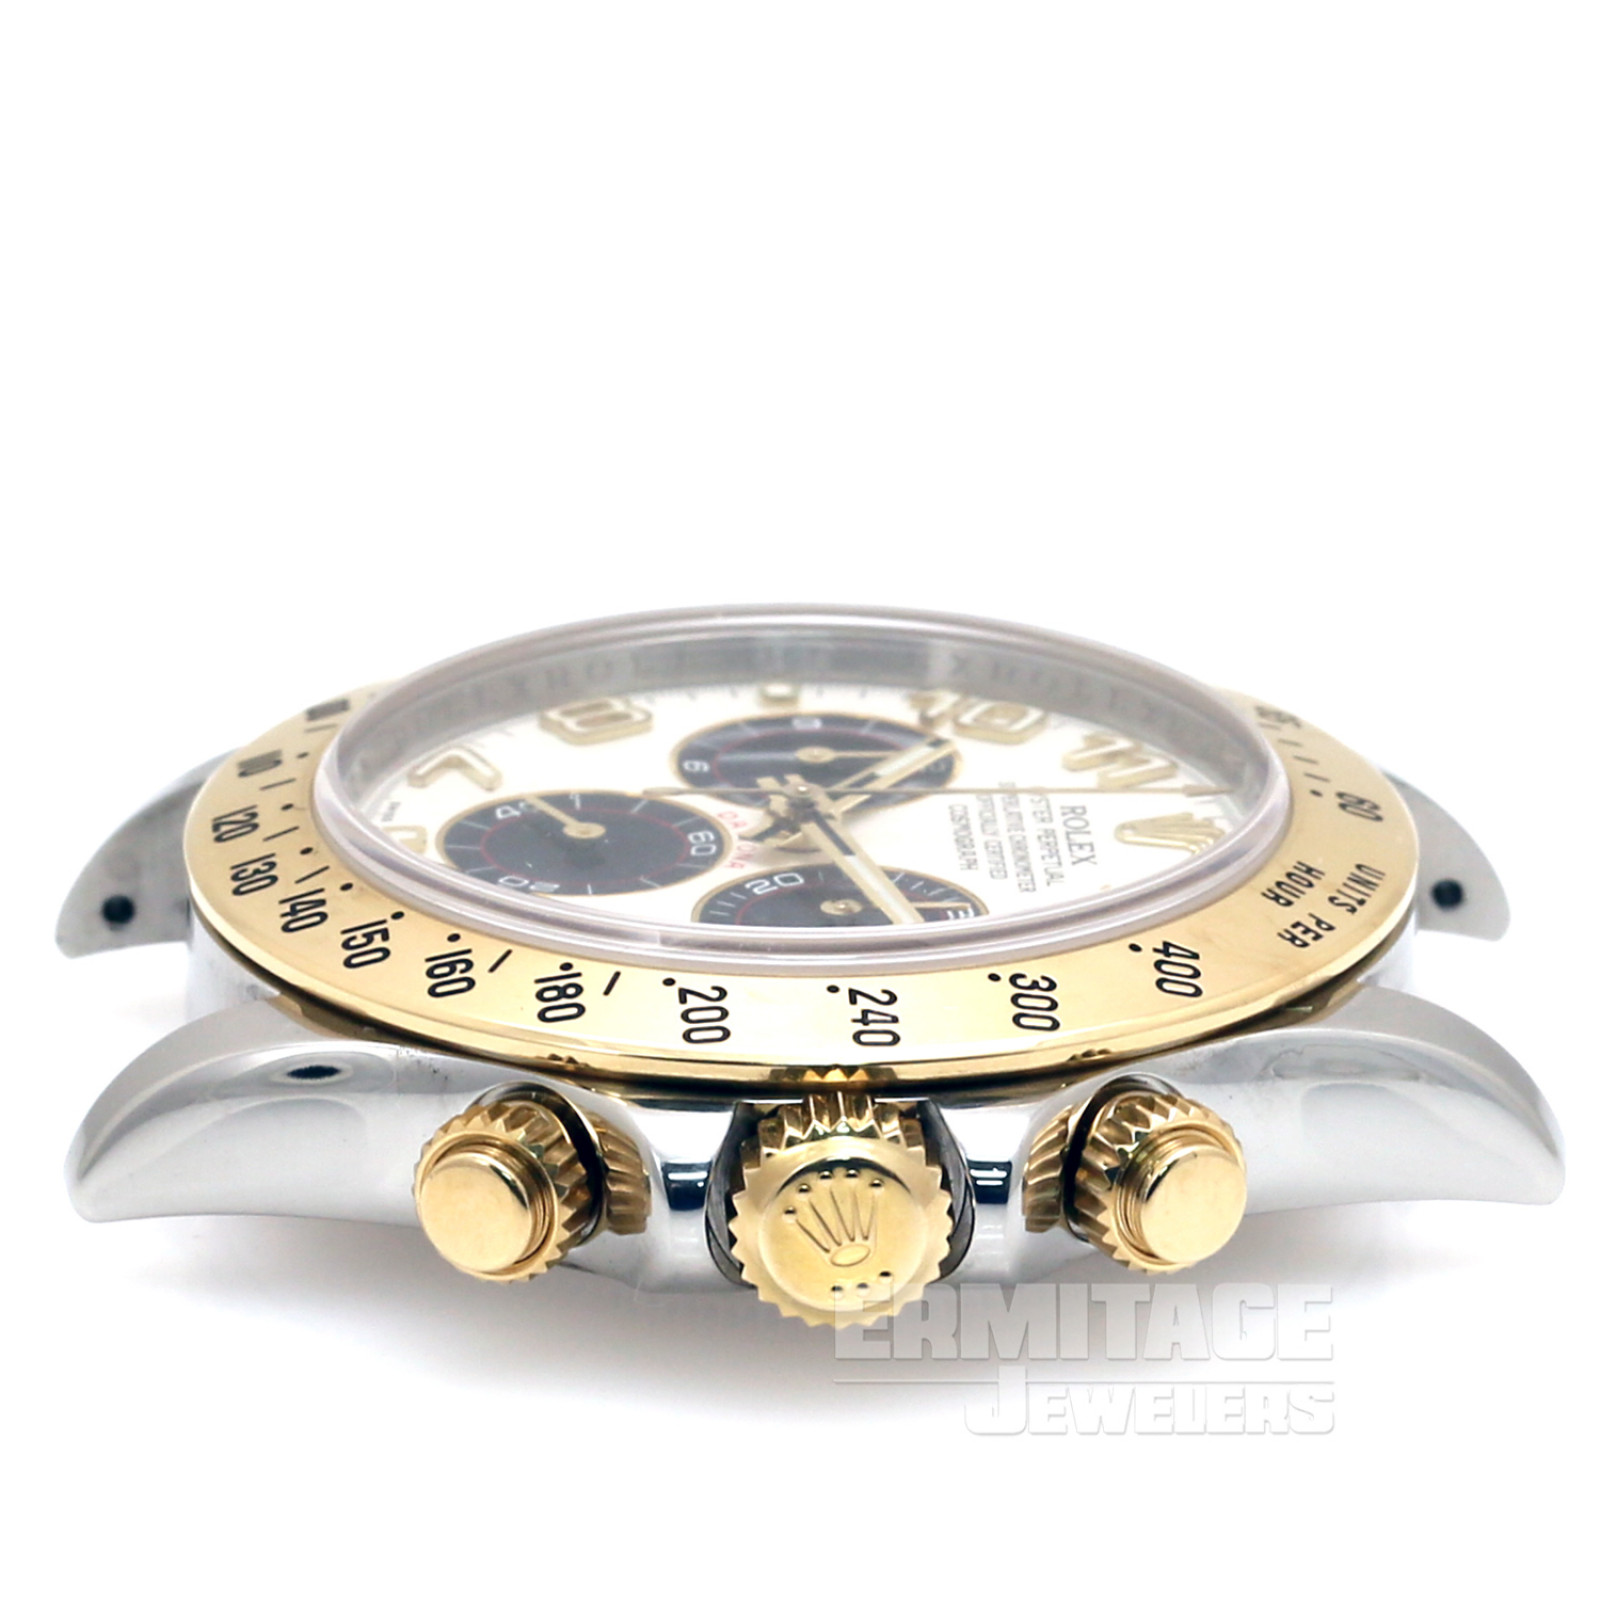 40 mm Rolex Daytona 116523 Gold & Steel on Oyster with White Panda Dial